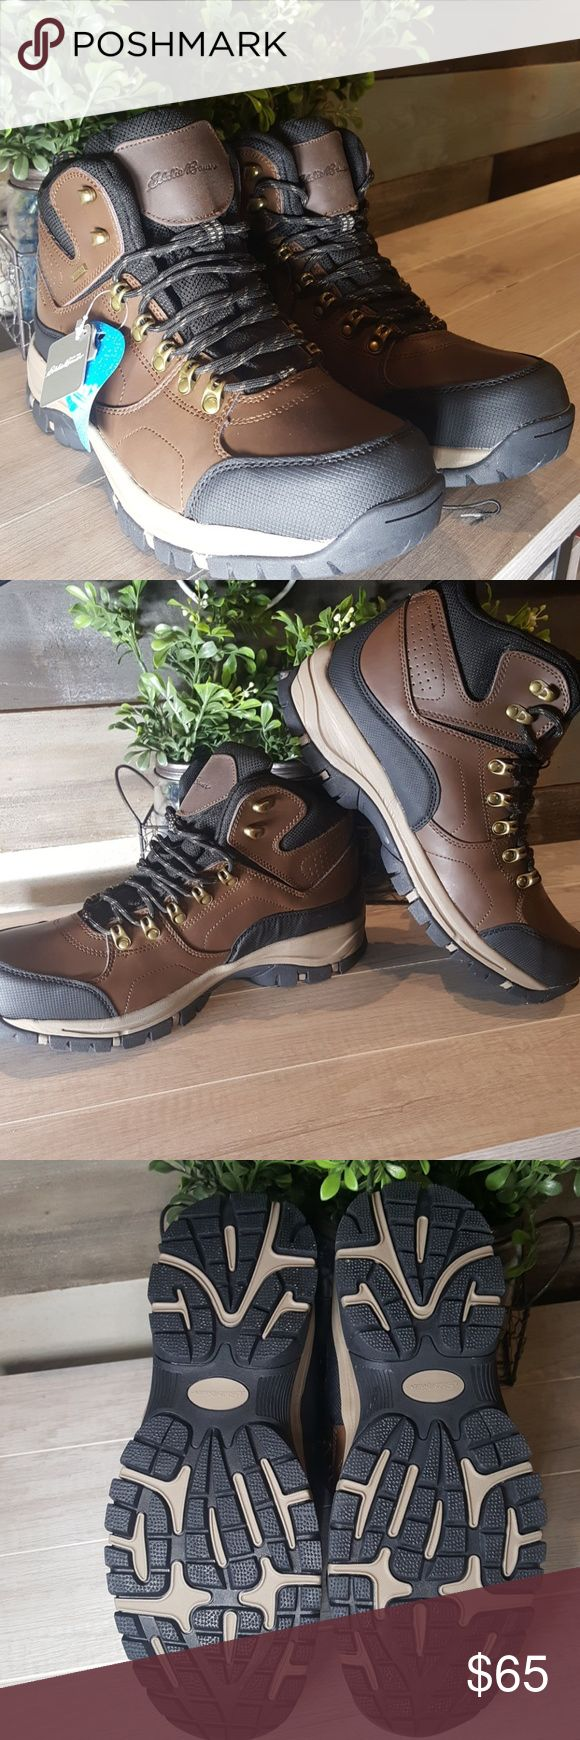 Eddie Bauer Men's Hiking Boots Eddie Bauer men's hiking boots. Waterproof. Lightweight flexible midsole. Leather upper. Cushioned insole. Style:Brad. Box not included. Eddie Bauer Shoes Boots